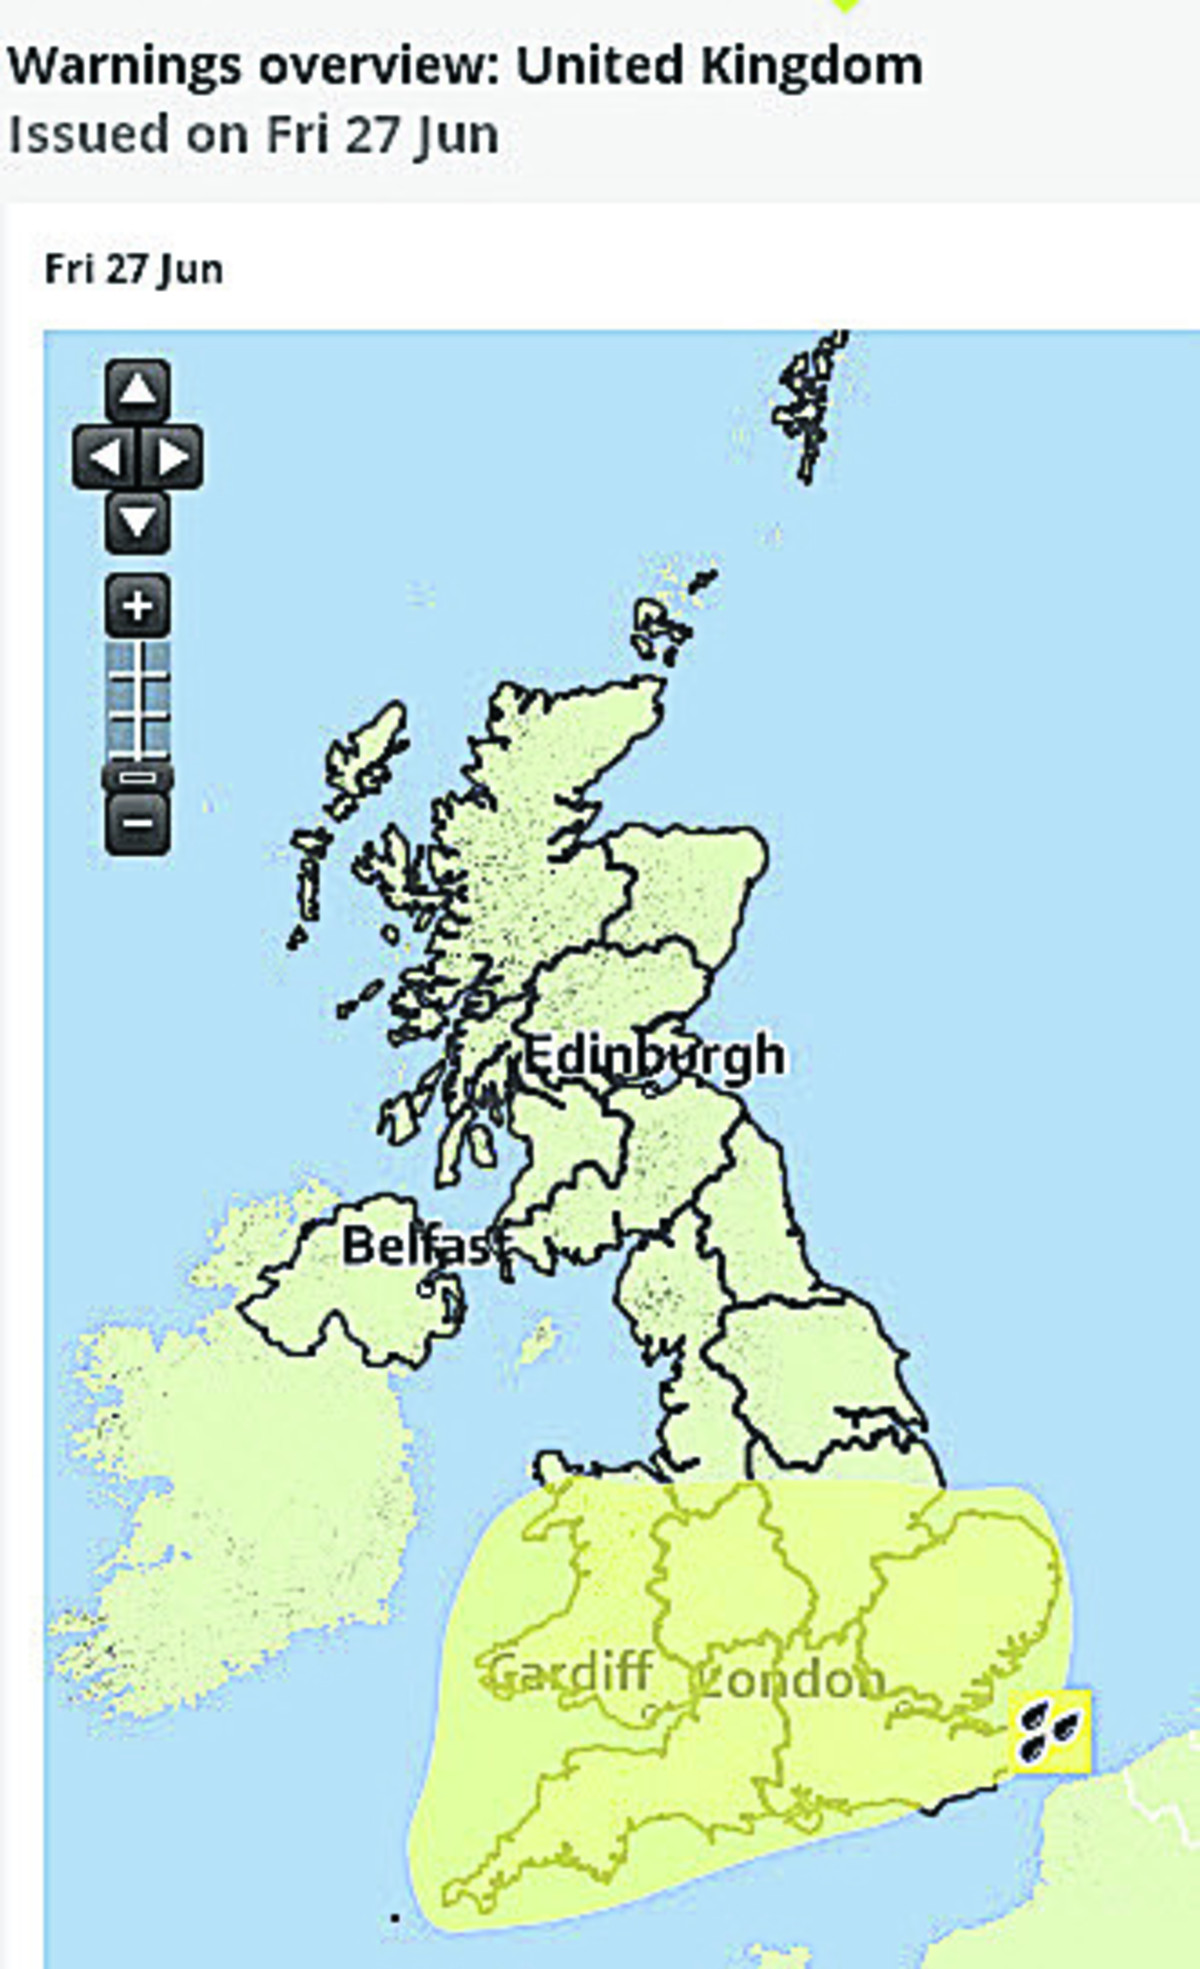 The weather warning map issued by the Met Office today